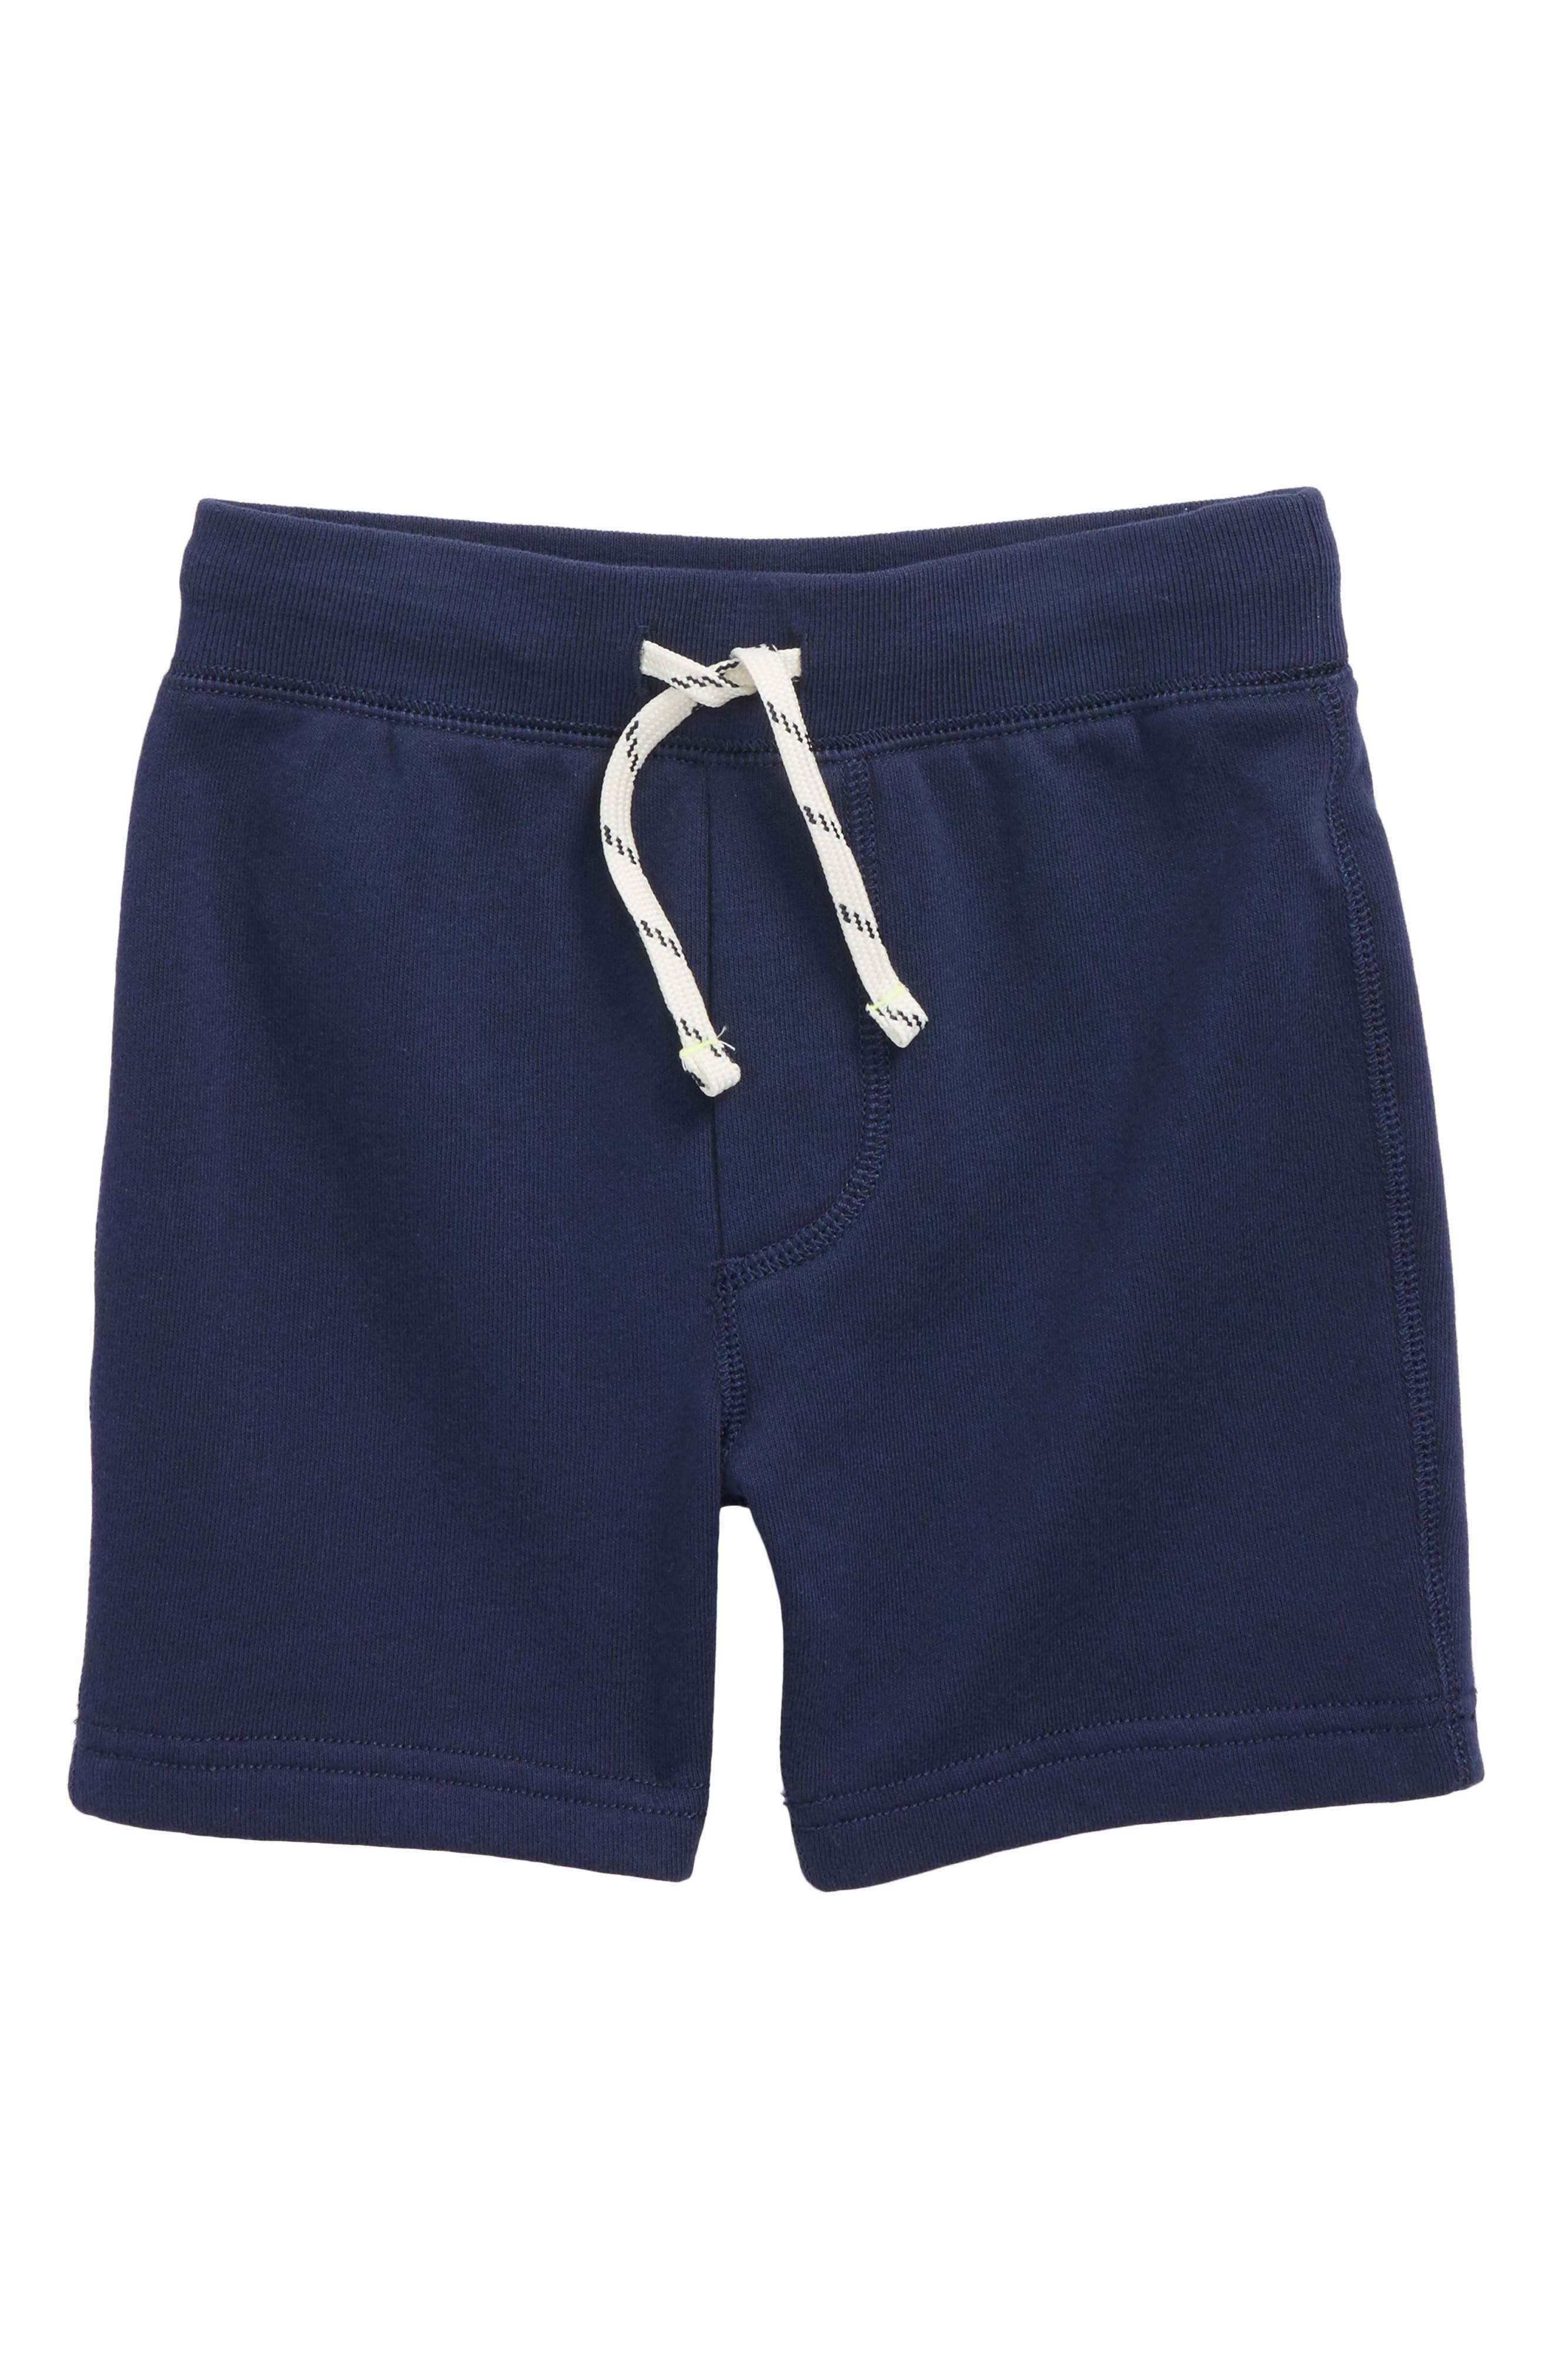 Toddler Boys Crewcuts By Jcrew Classic Sweat Shorts Size 3T  Blue